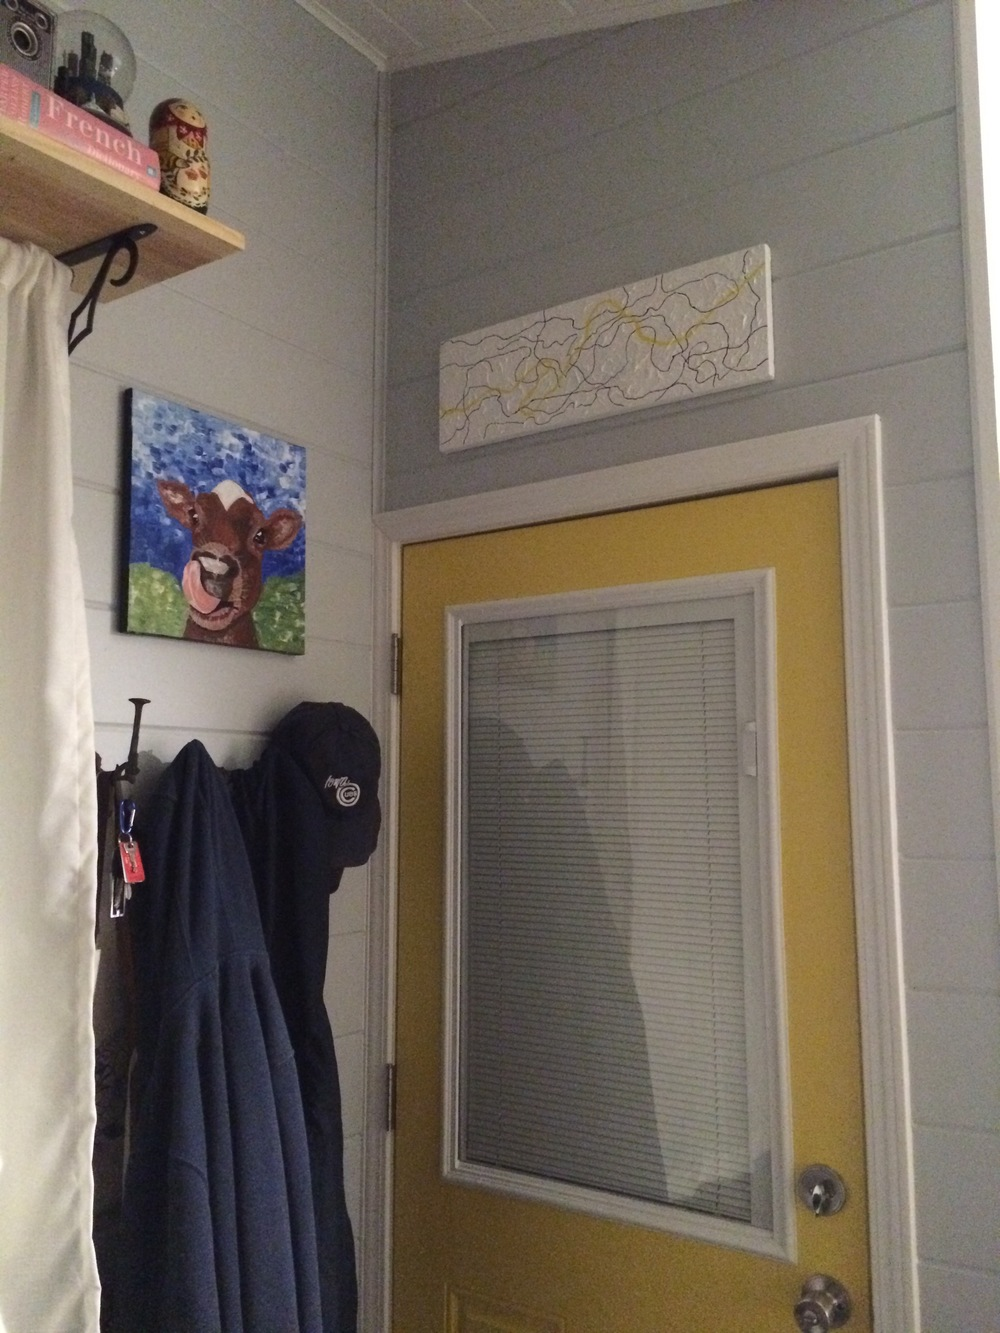 Our entryway. We have hooks for coats and hats and shoe storage that hangs on the wall beneath.